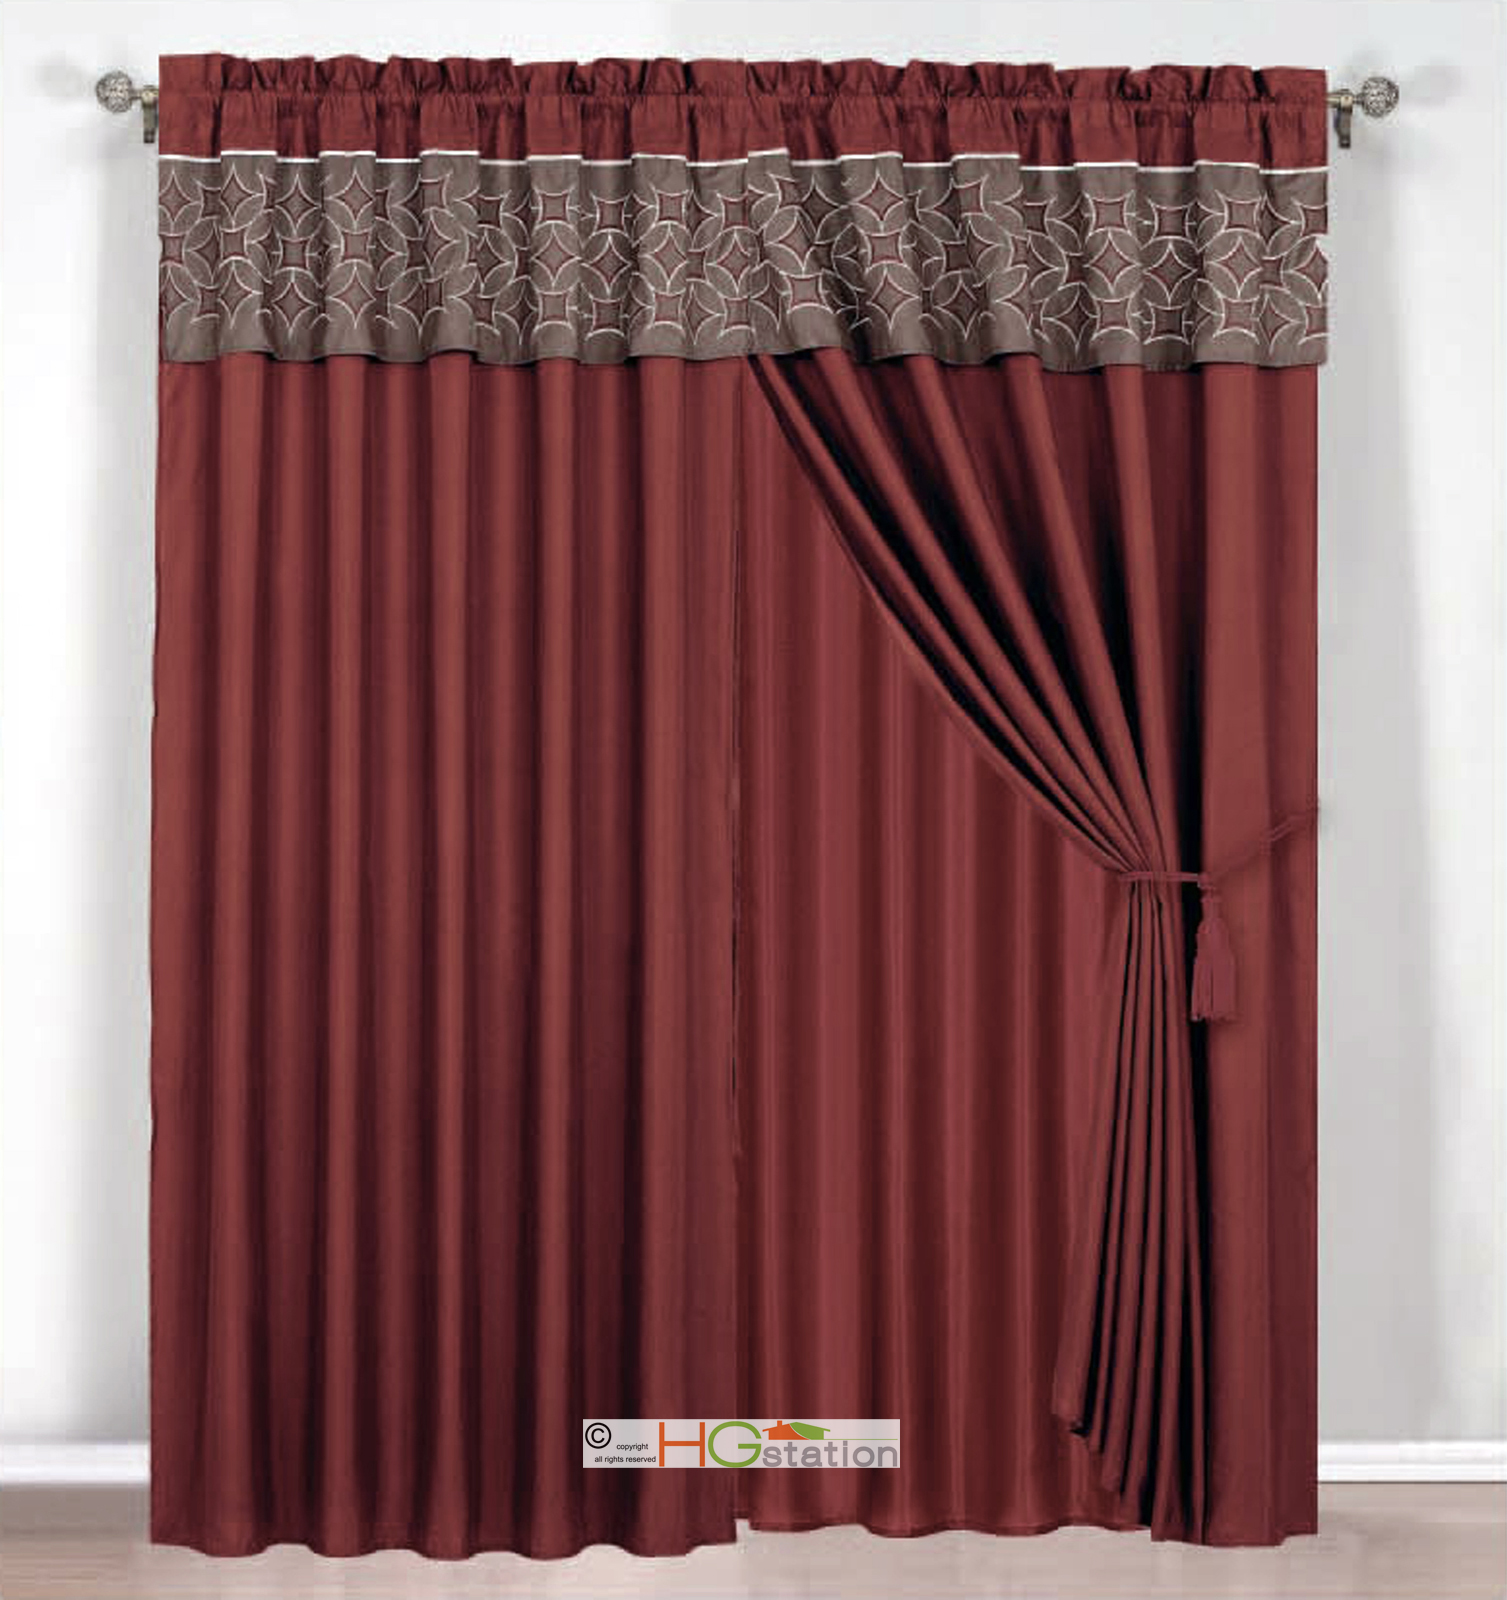 4 Pc Embroidered Medallion Circle Curtain Set Rust Coffee Valance Drape Liner Ebay